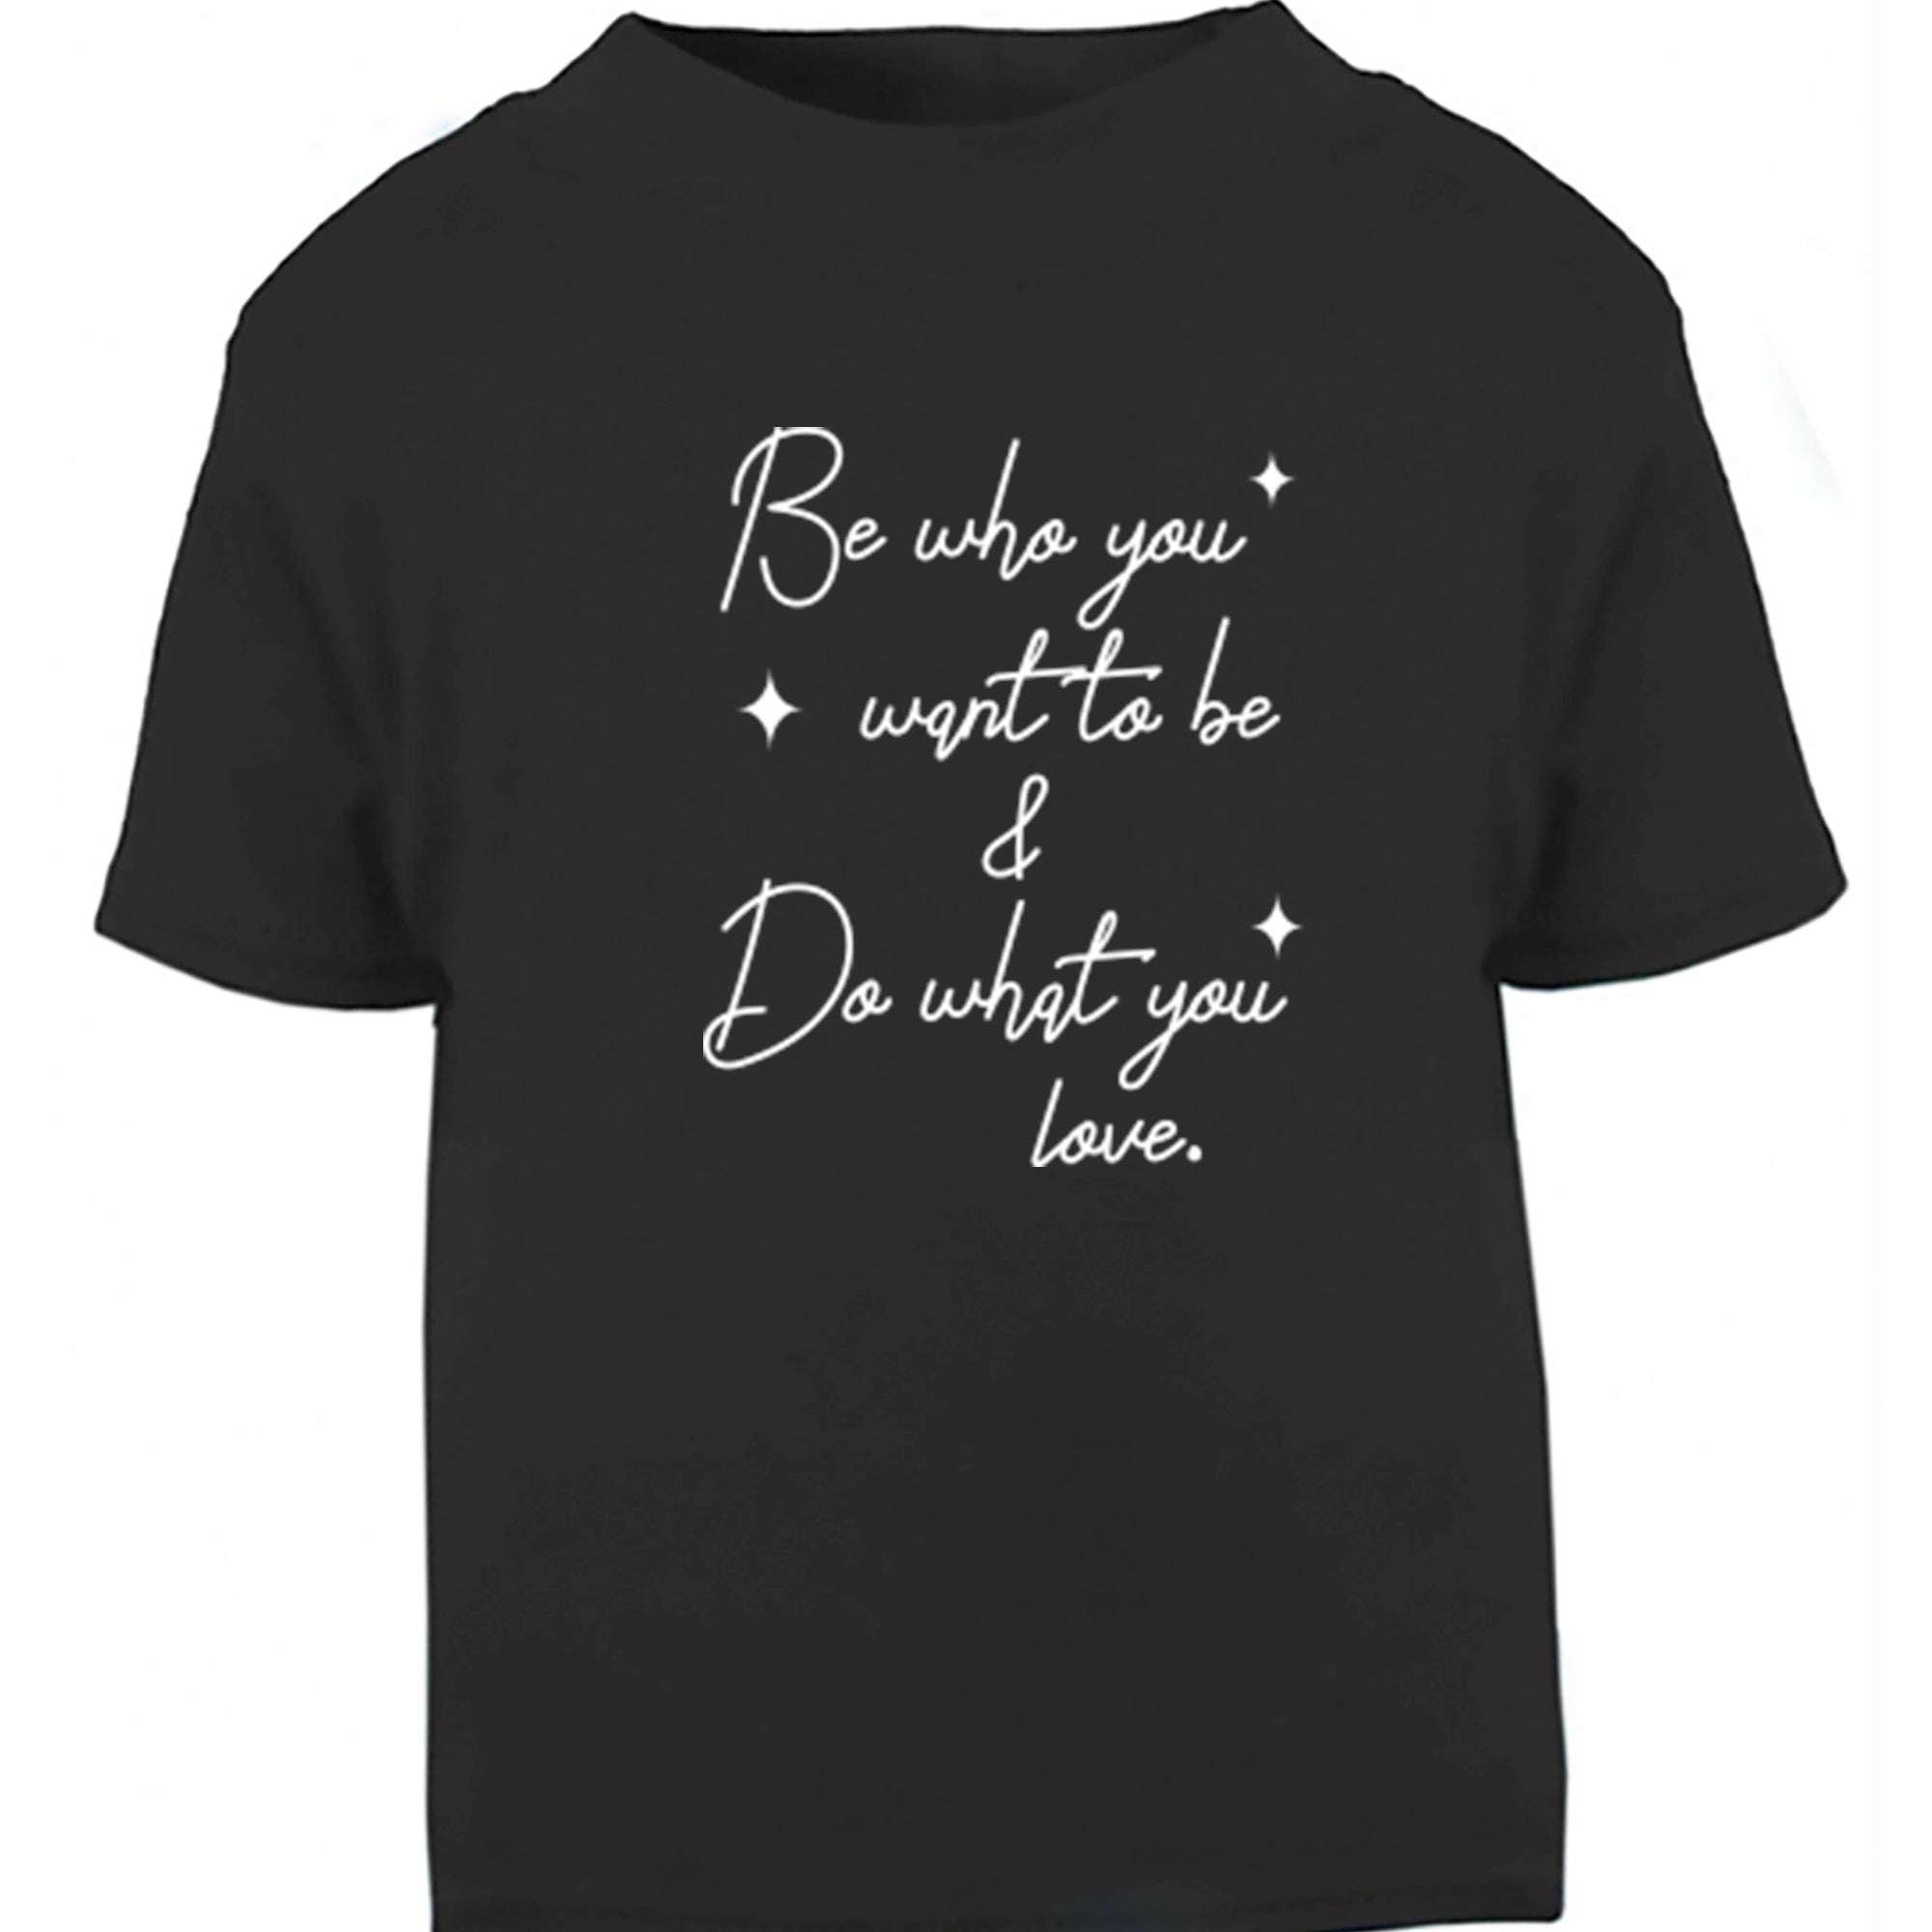 Be Who You Want To Be & Do What You Love Childrens Ages 3/4-12/14 Unisex Fit T-Shirt S0503 - Illustrated Identity Ltd.